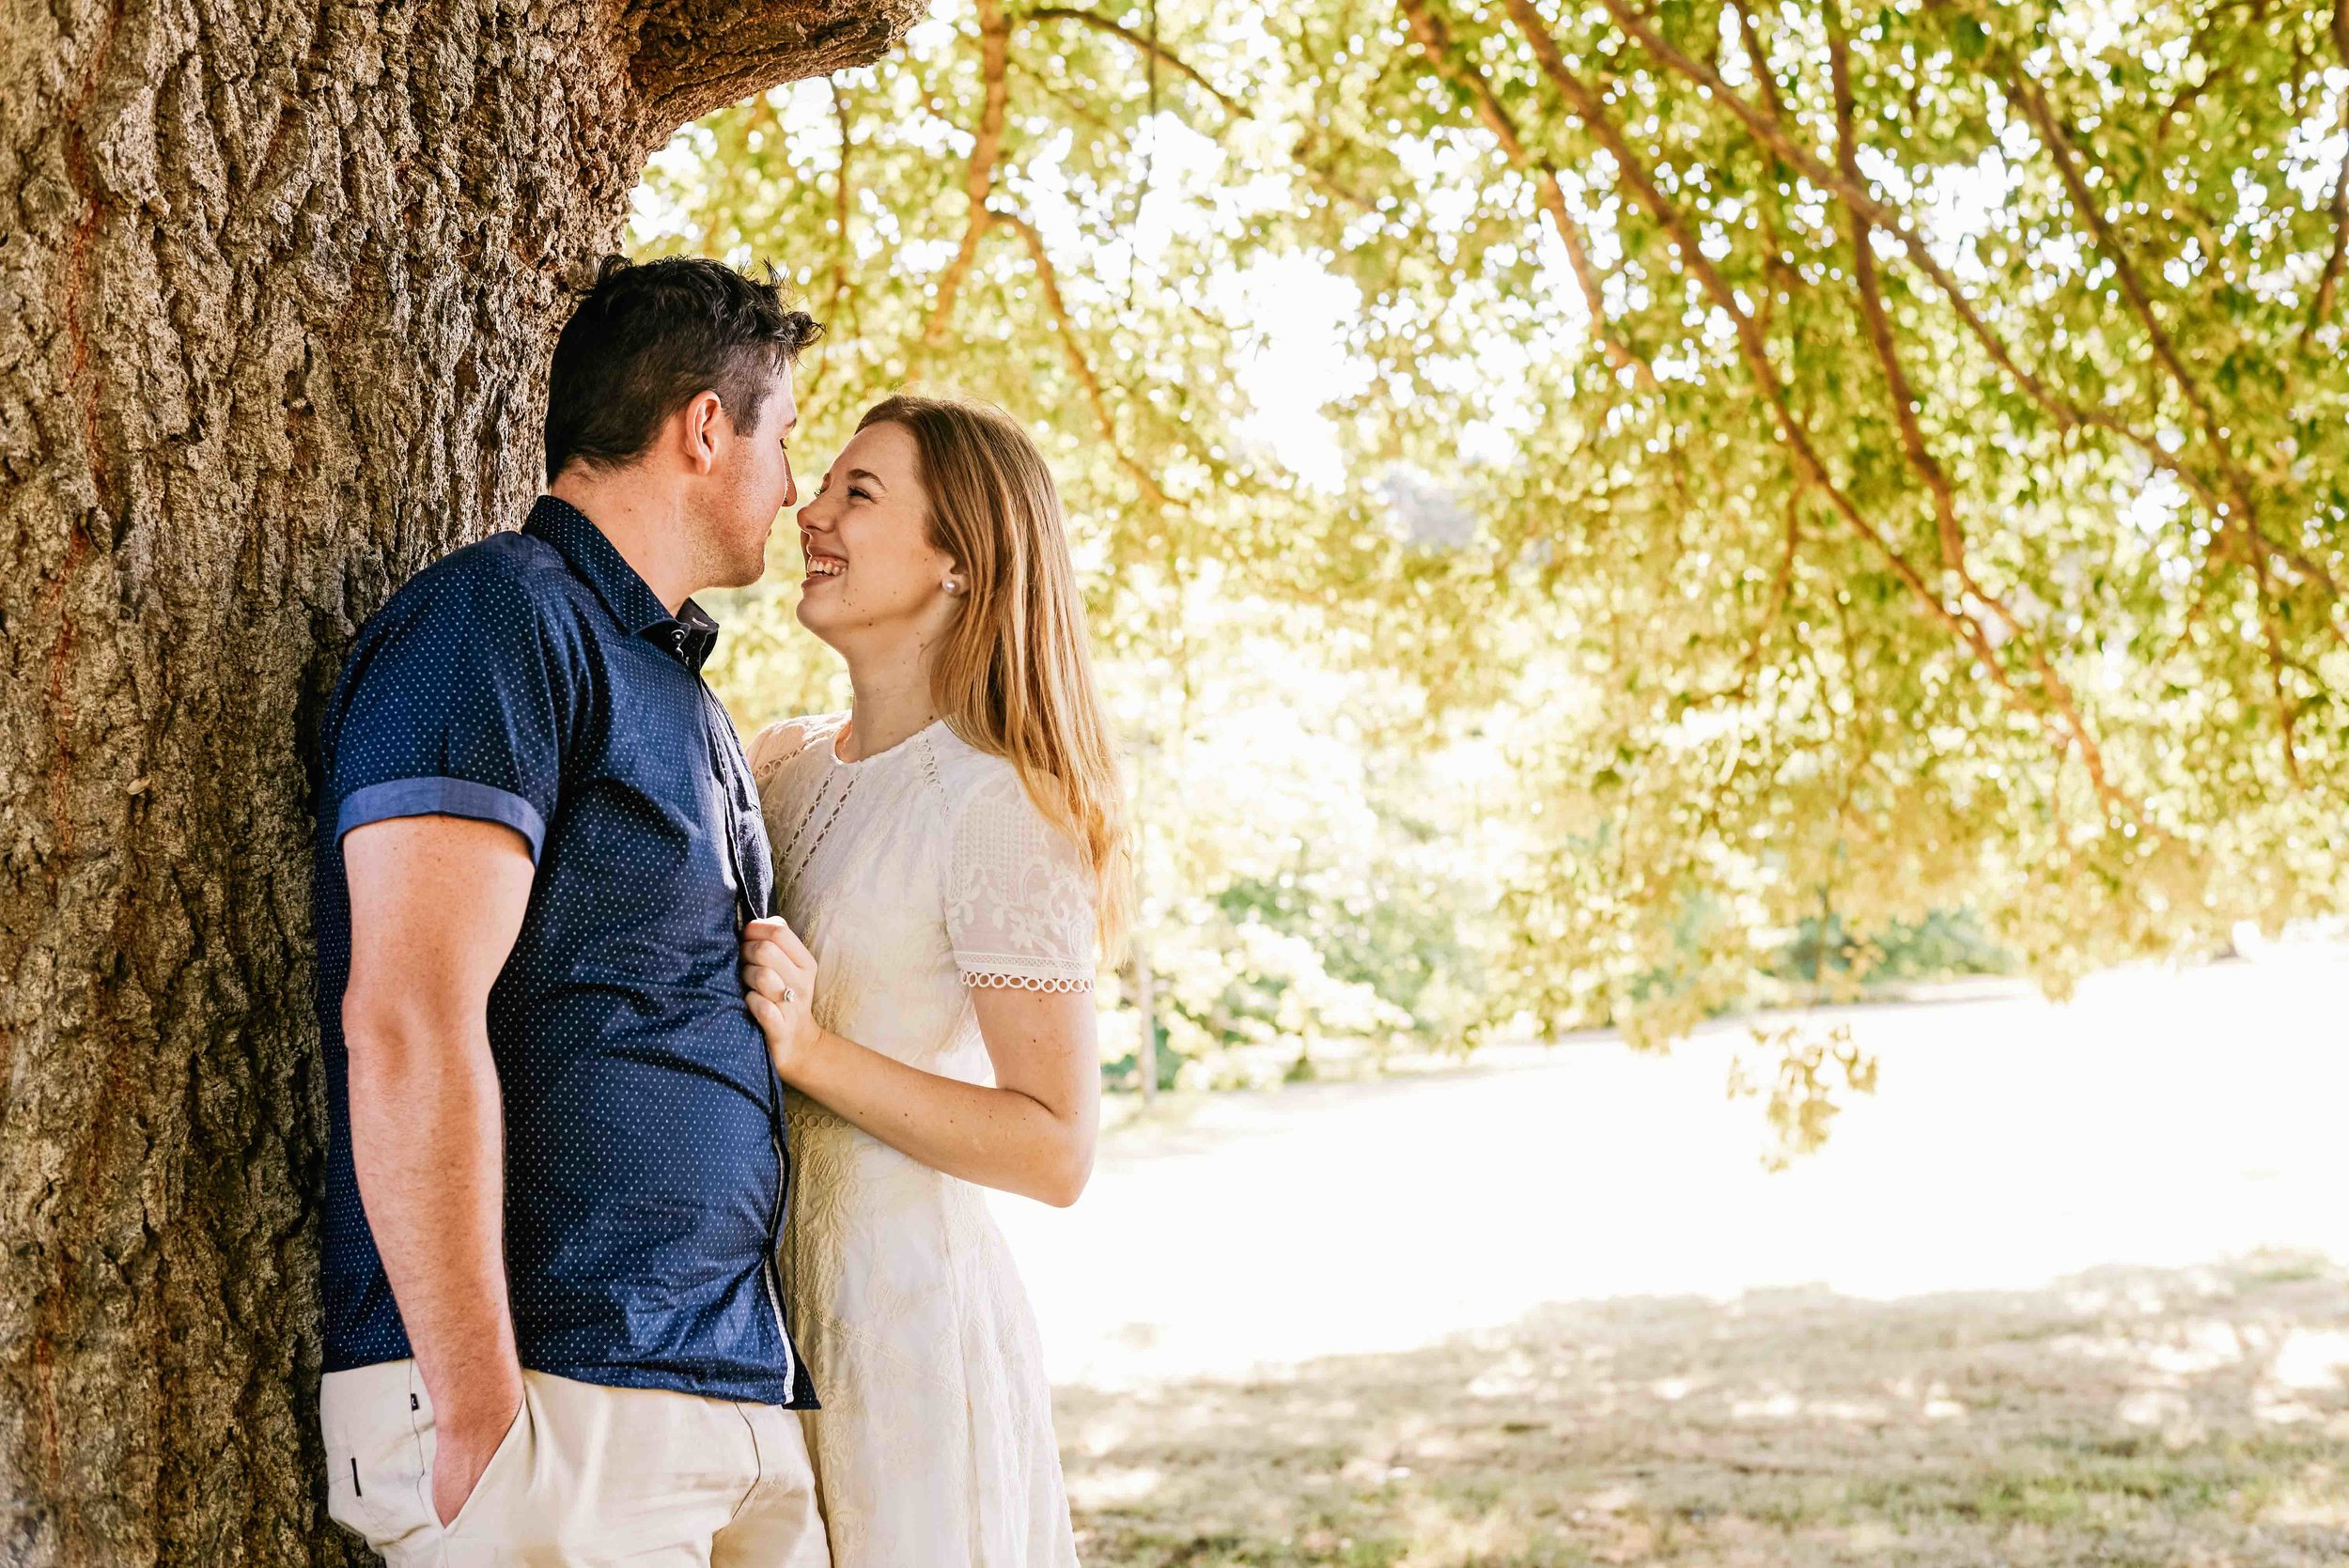 marissa-jade-photography-mornington-peninsula-wedding-photographer-natural-engagement-photography-red-hill-88.jpg